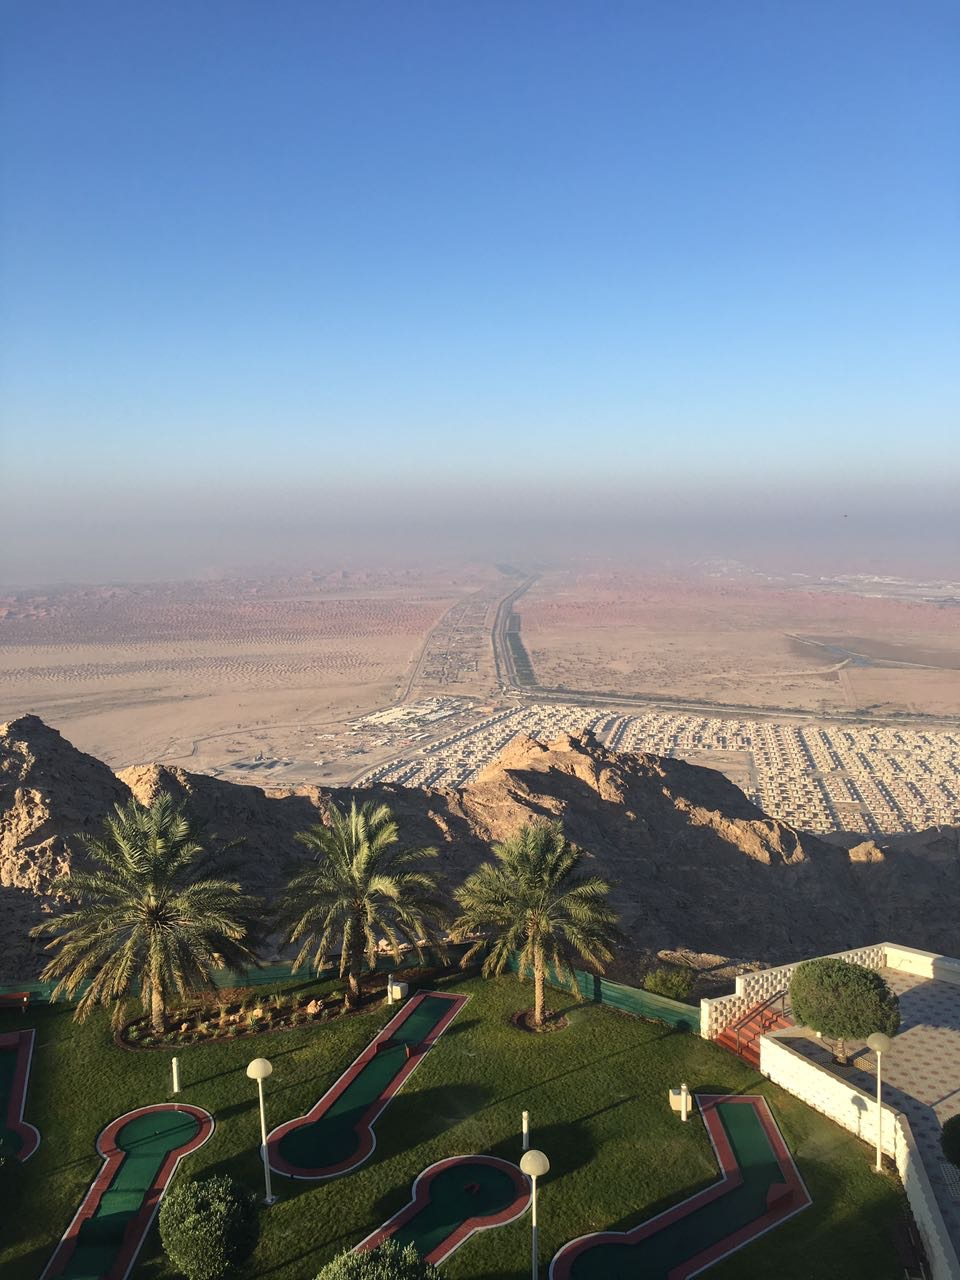 The views from Mecure Grand Jebel Hafeet